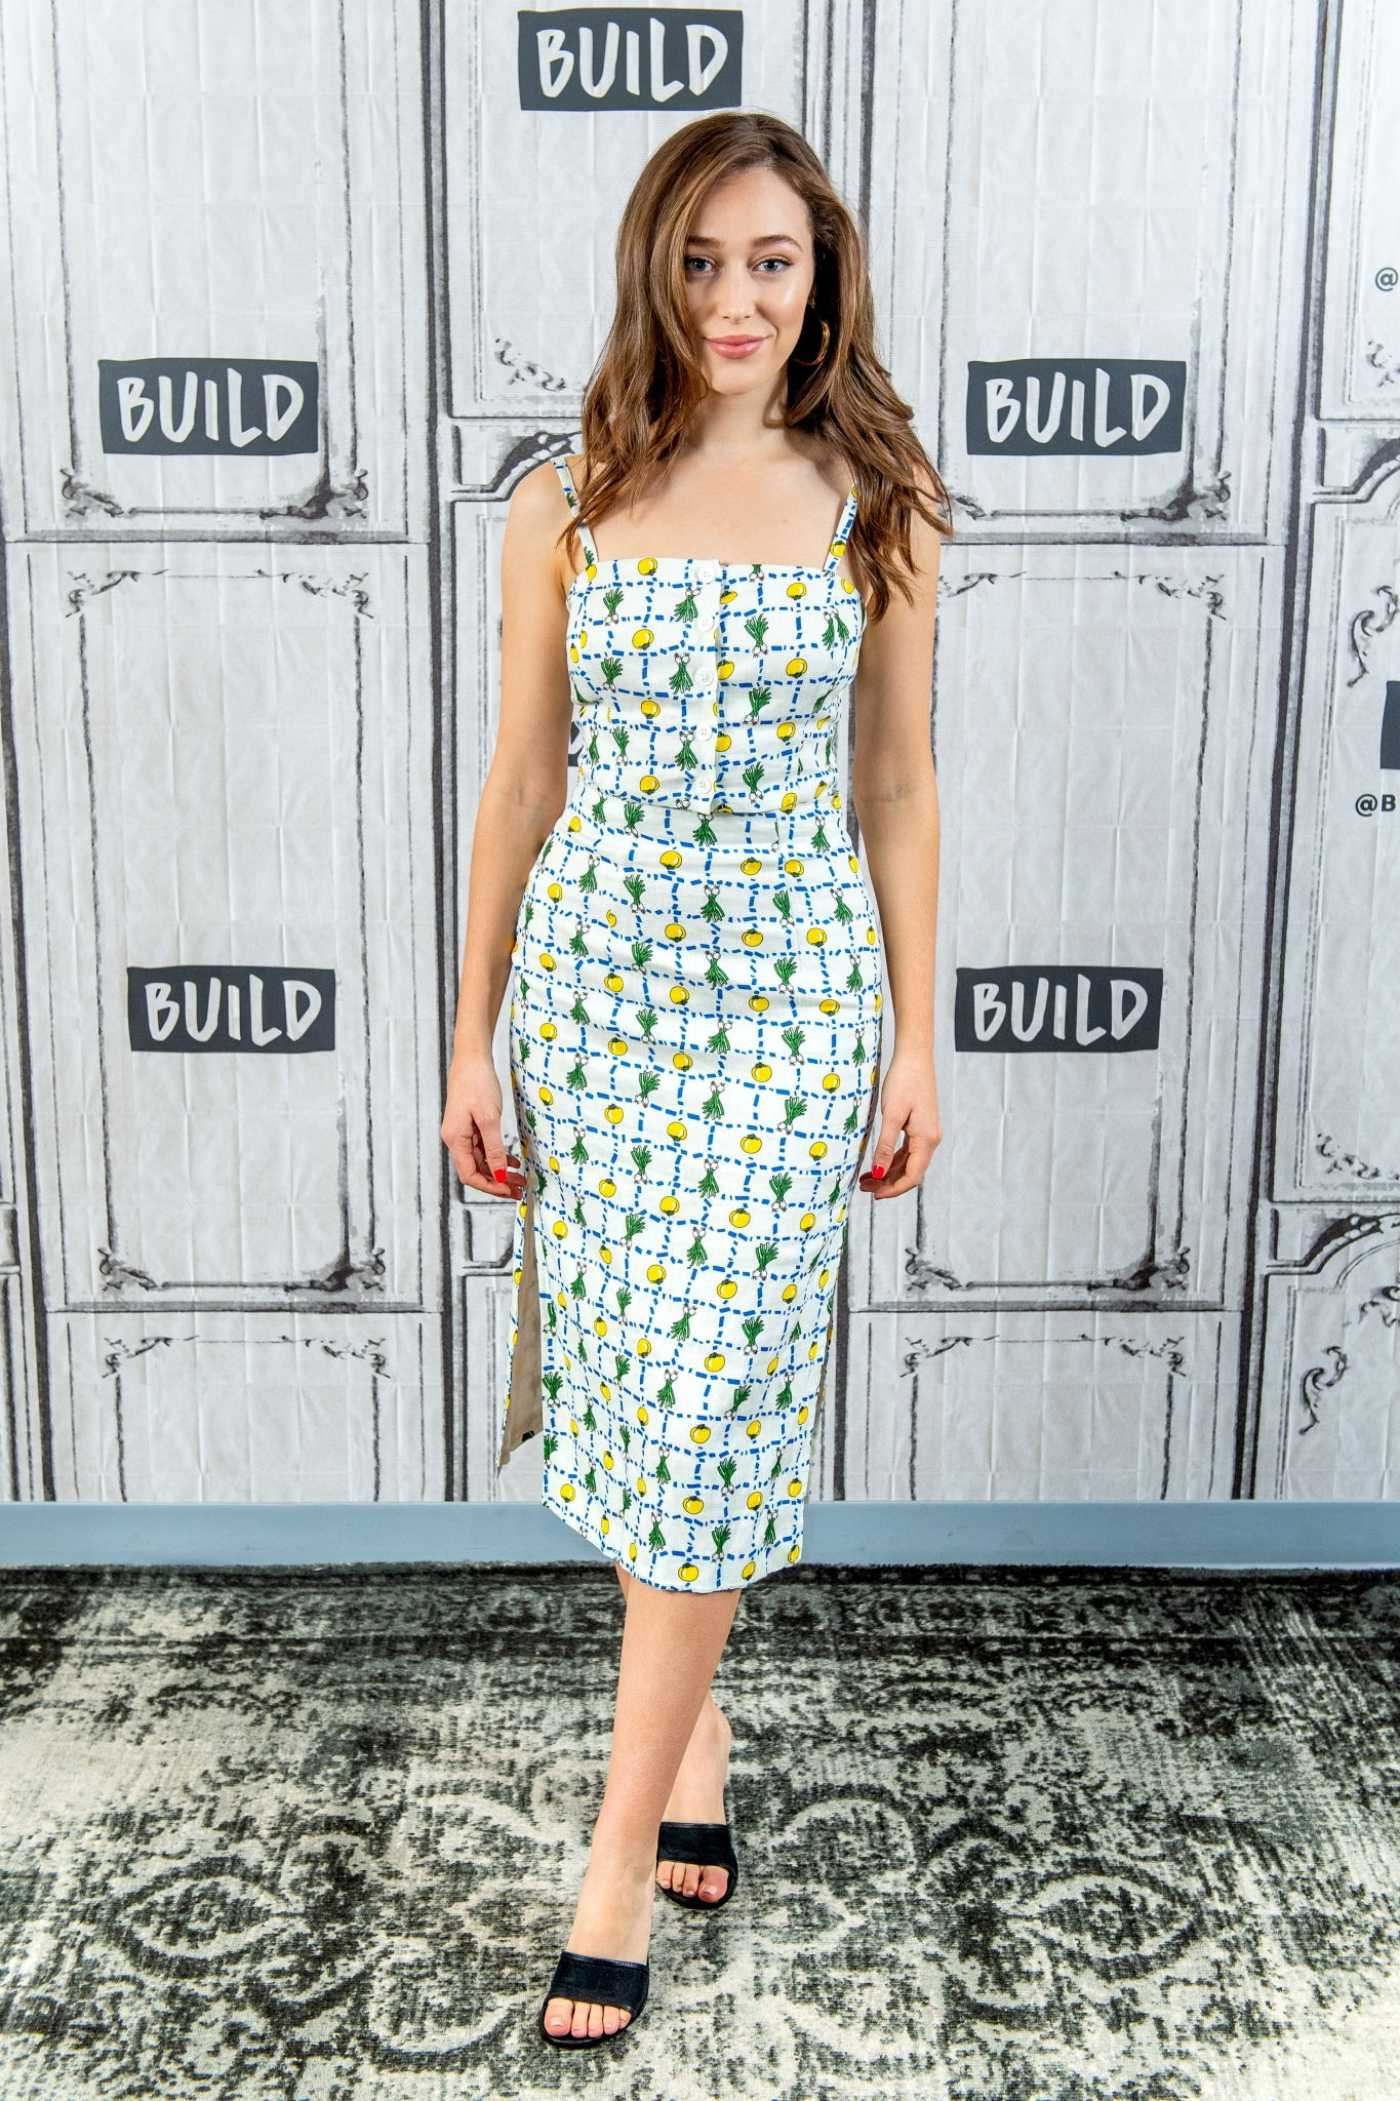 Alycia Debnam-Carey Attends AOL Build Studio in New York City 06/03/2019